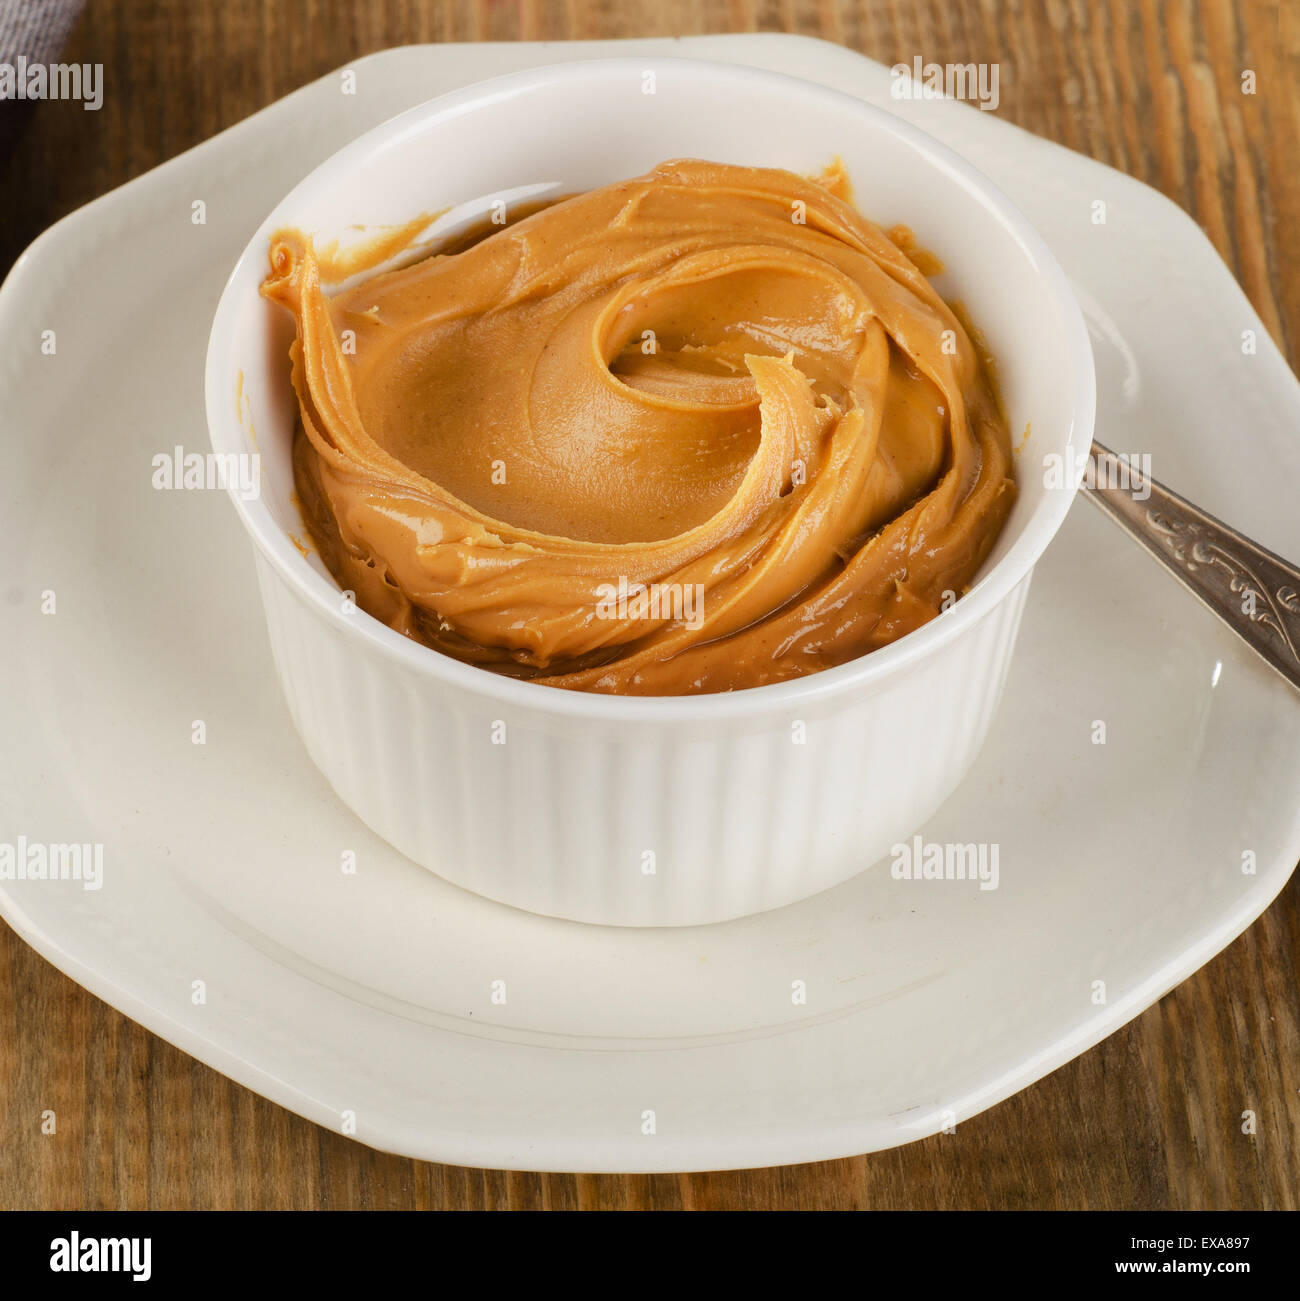 Peanut butter in a white bowl .  Shallow dof. - Stock Image